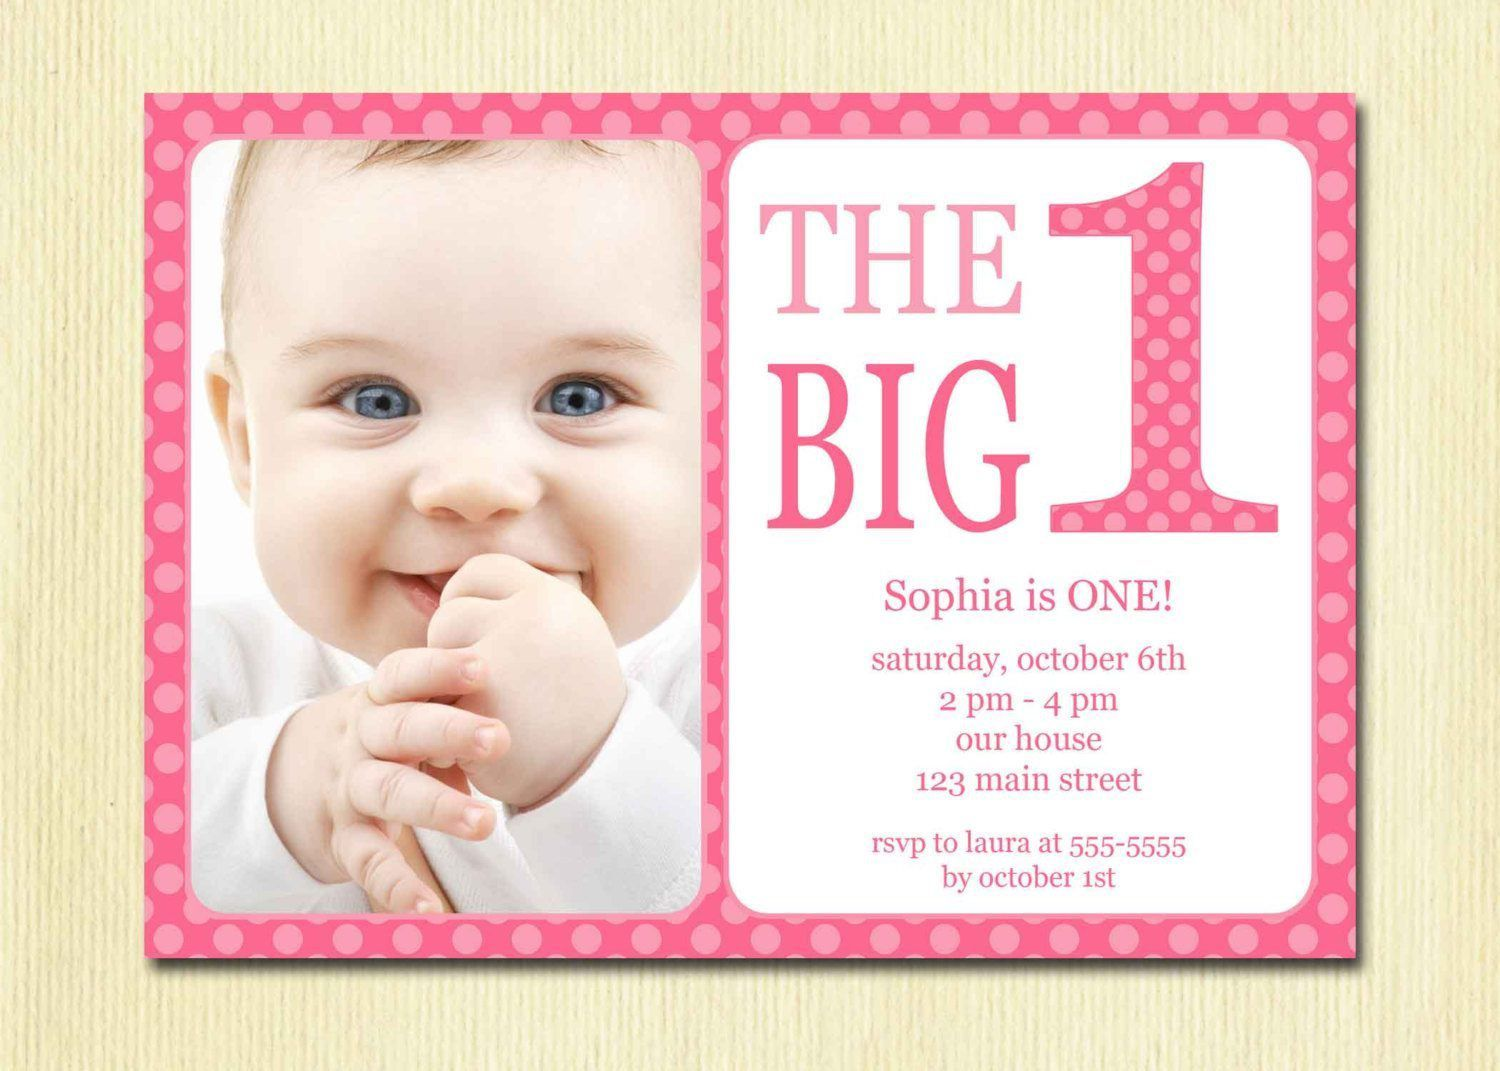 002 Exceptional 1st Birthday Invitation Template Image  Background Design Blank For Girl First Baby Boy Free Download IndianFull